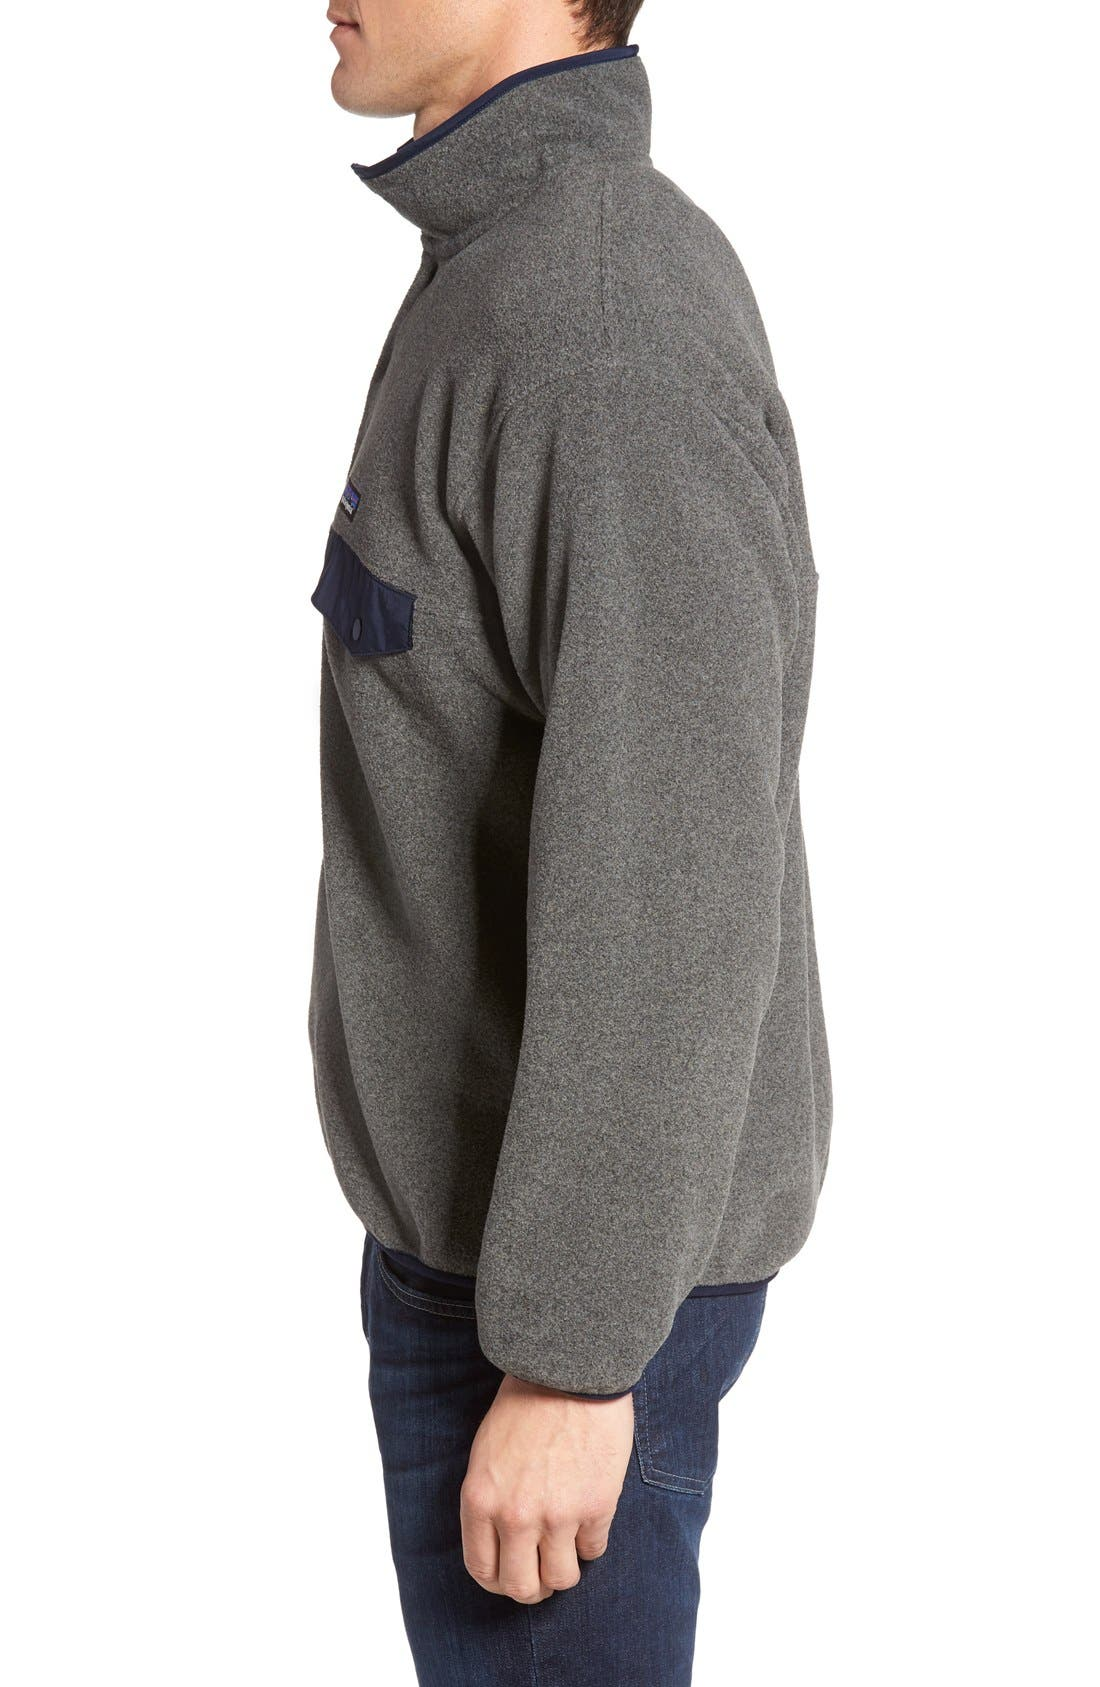 Synchilla<sup>®</sup> Snap-T<sup>®</sup> Pullover,                             Alternate thumbnail 3, color,                             Nickel/ Navy Blue